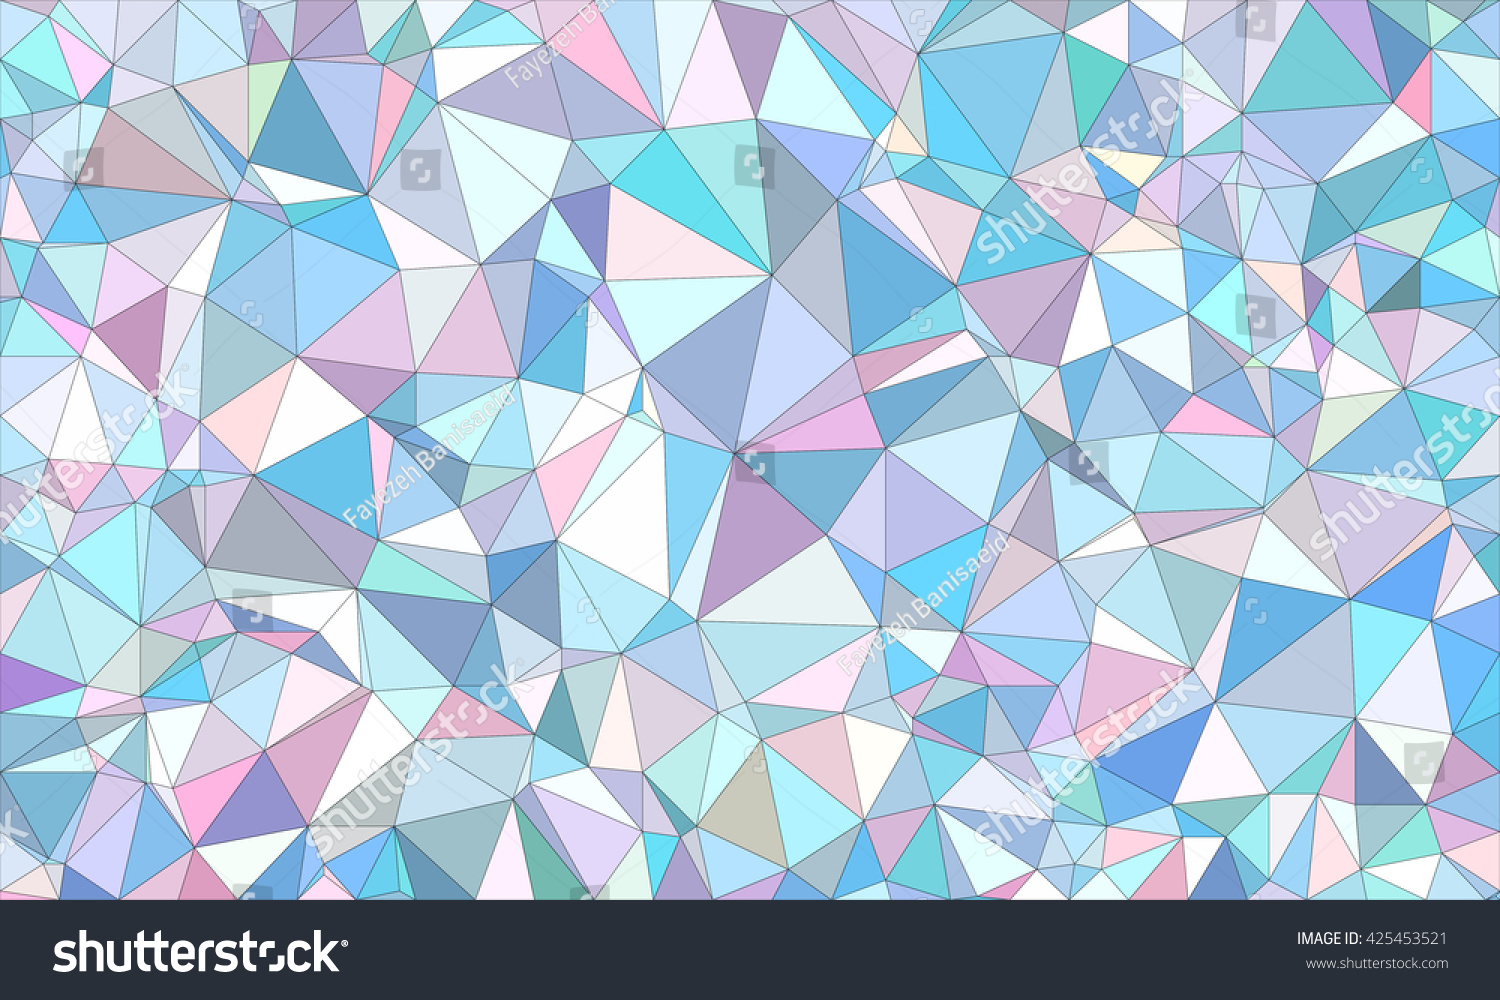 Low poly background design in geometric pattern. polygon wallpaper in origami style. polygonal texture